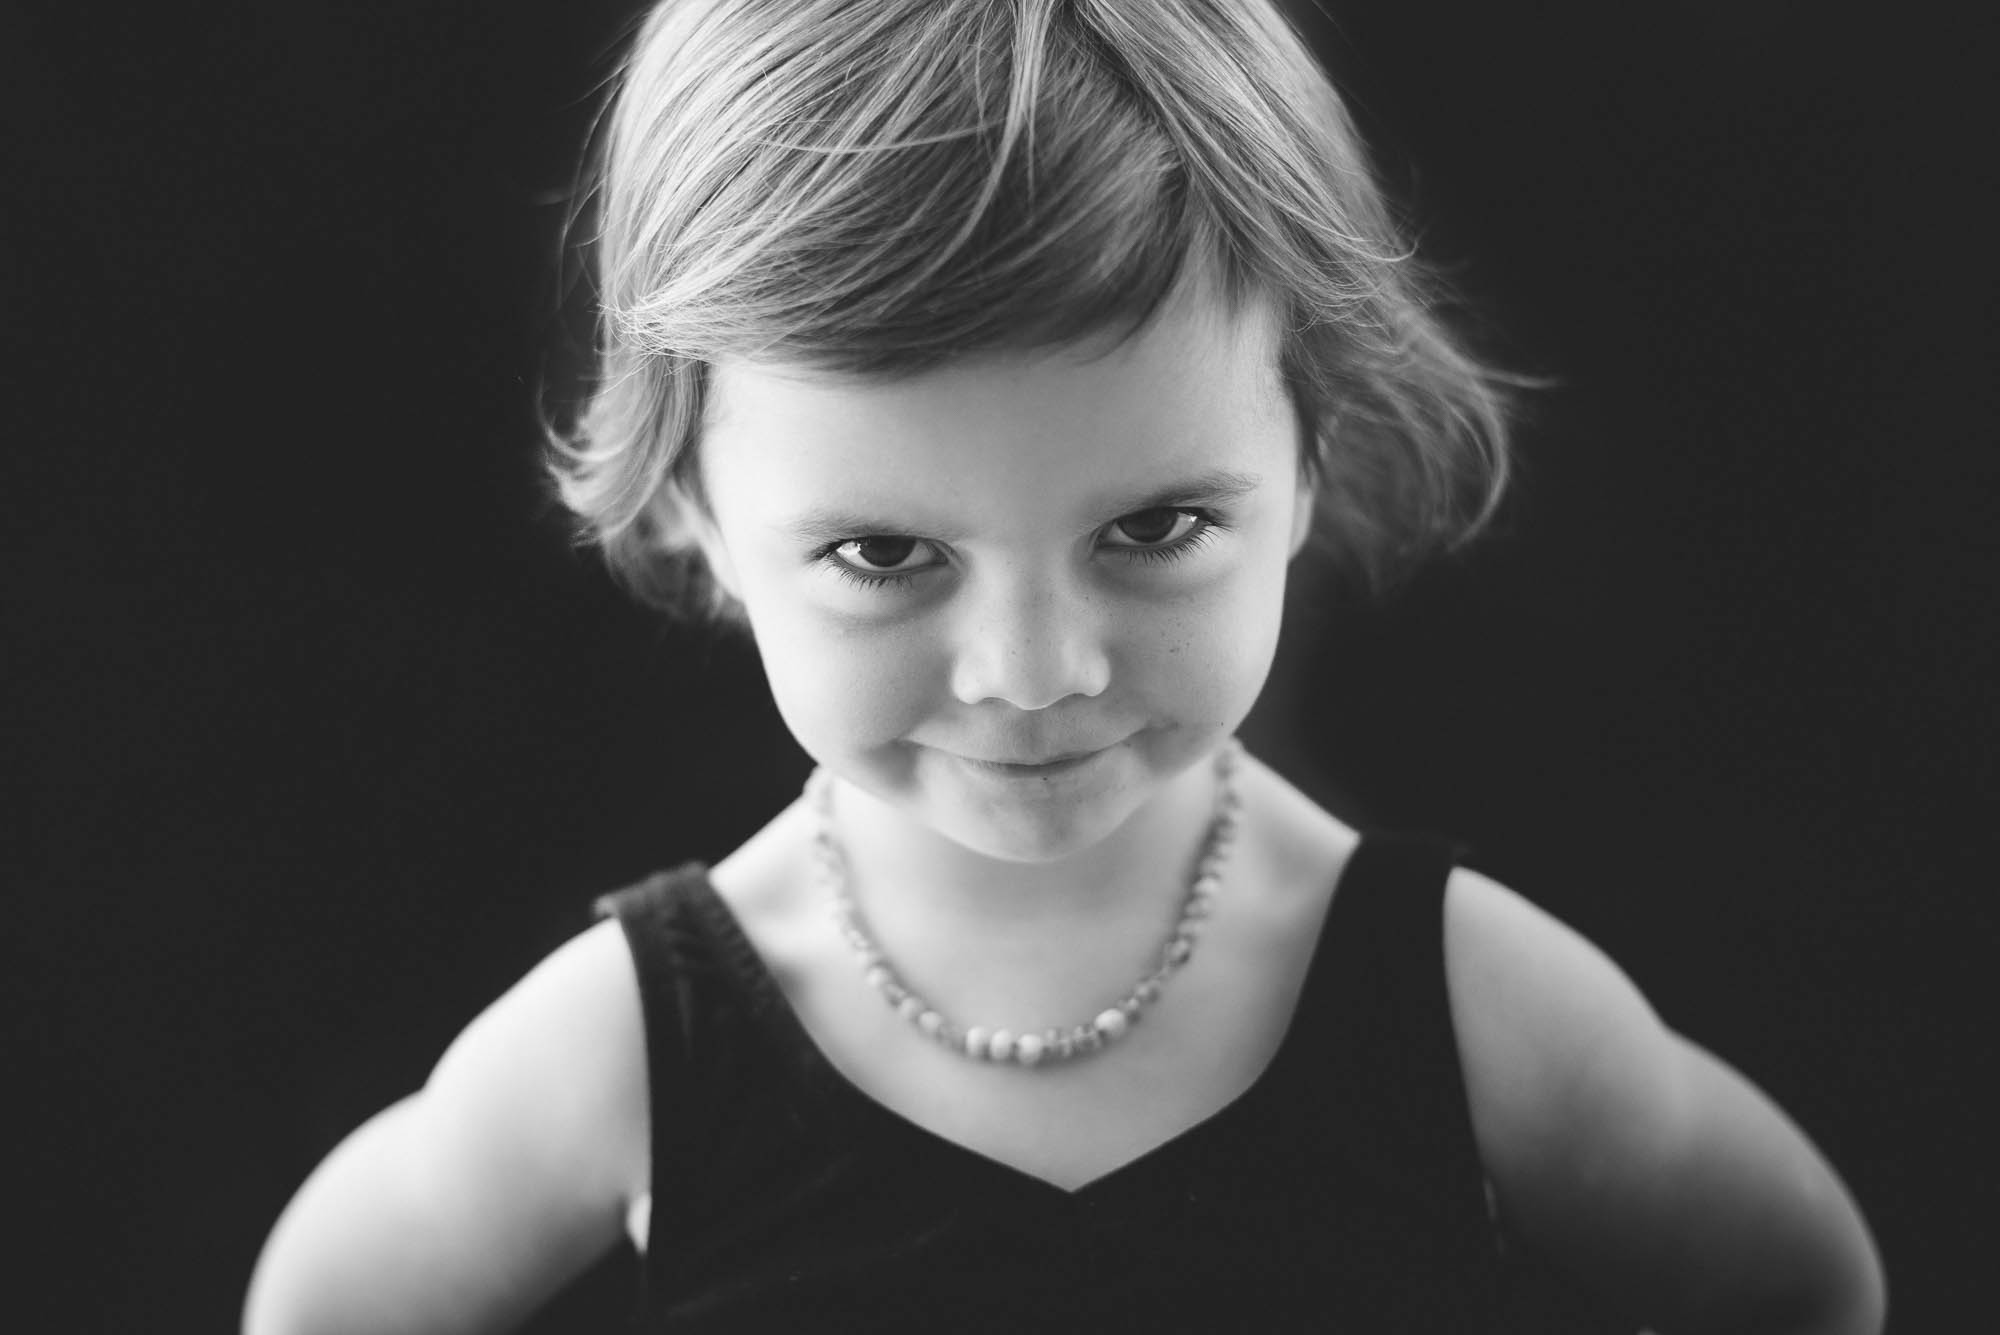 melbourne_family_photographer_childhood_portraits_girl.jpg